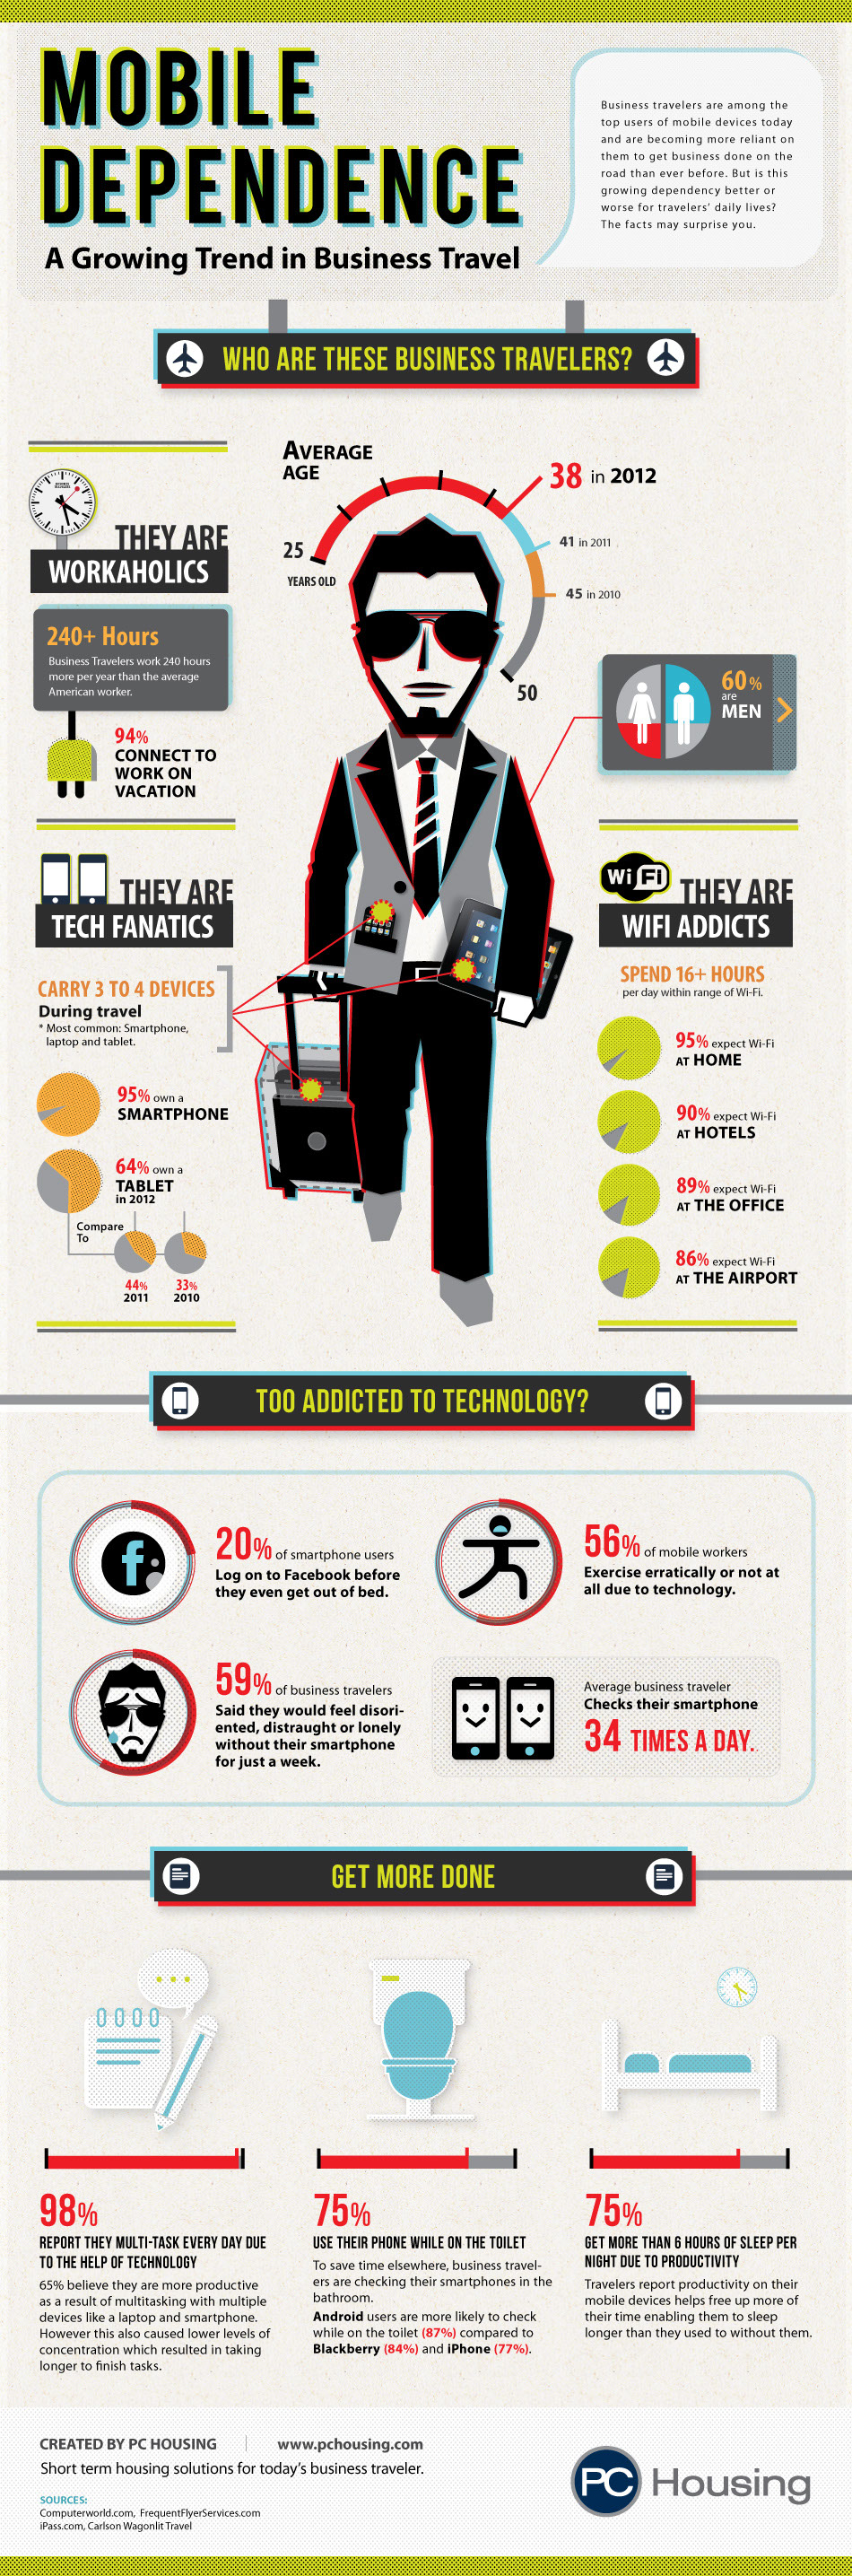 Mobile-Dependence-In-Business-Travel-infographic